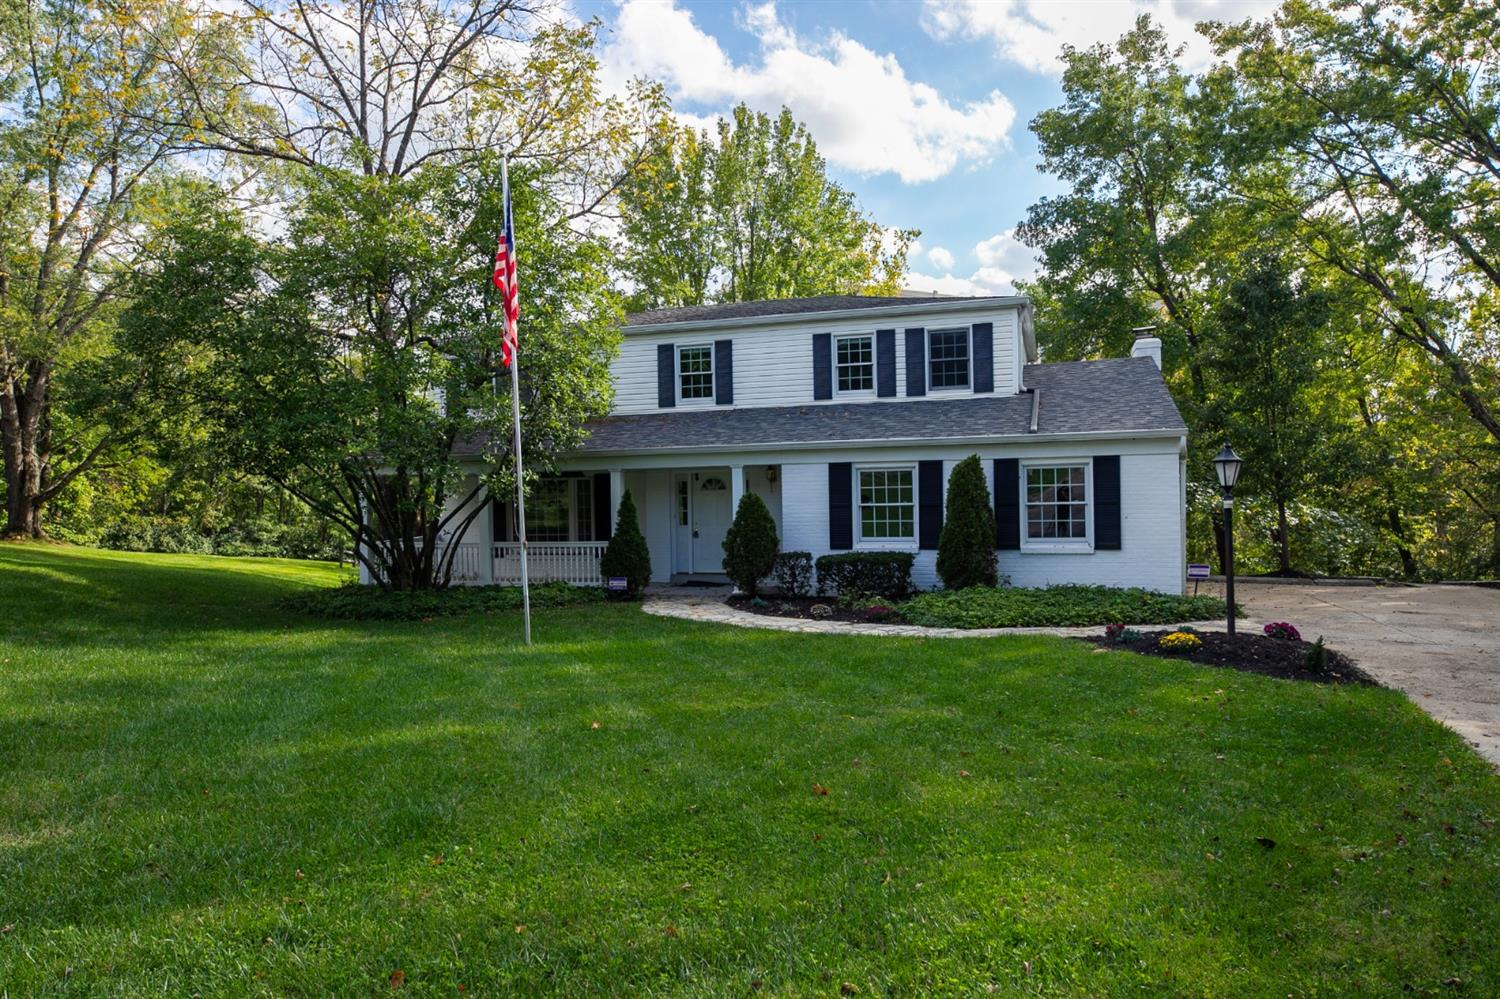 10610 Thistlewood Court, Montgomery, Ohio 45242, 4 Bedrooms Bedrooms, 9 Rooms Rooms,2 BathroomsBathrooms,Single Family Residence,For Sale,Thistlewood,1718878